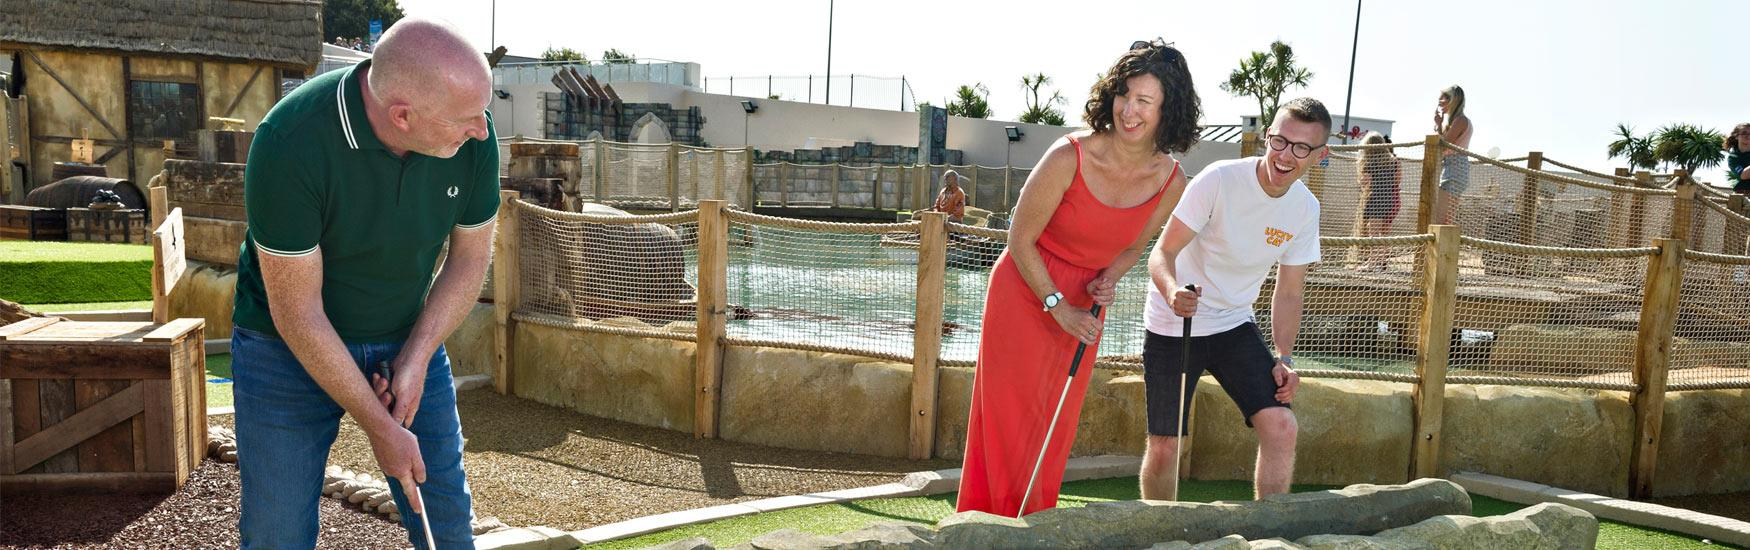 Group playing golf at Smugglers Cove Adventure Golf